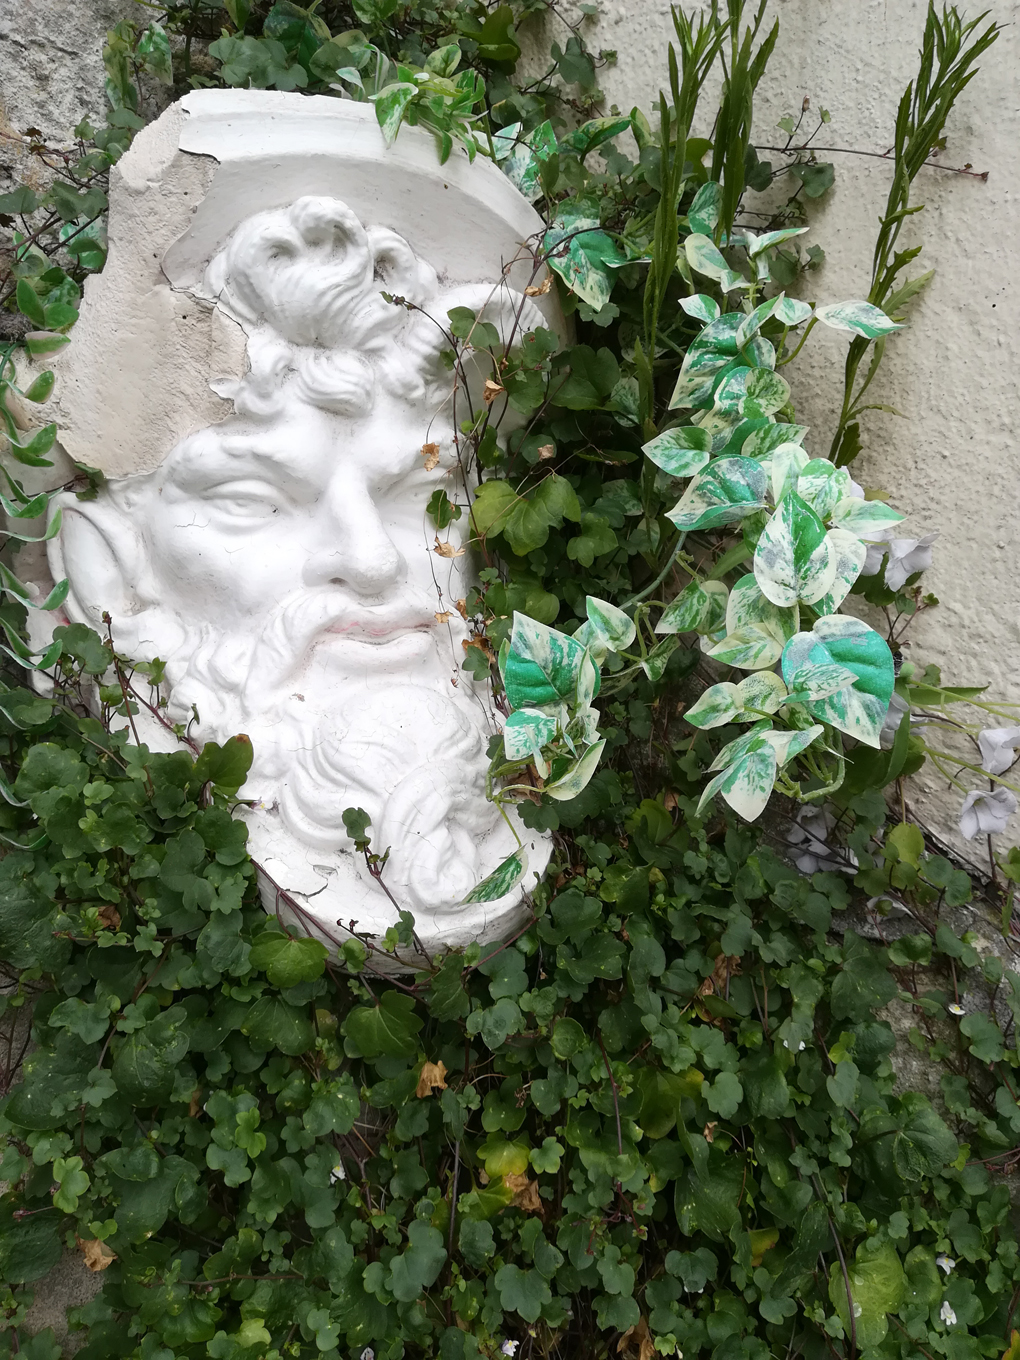 A classical statue head partially covered in vines.